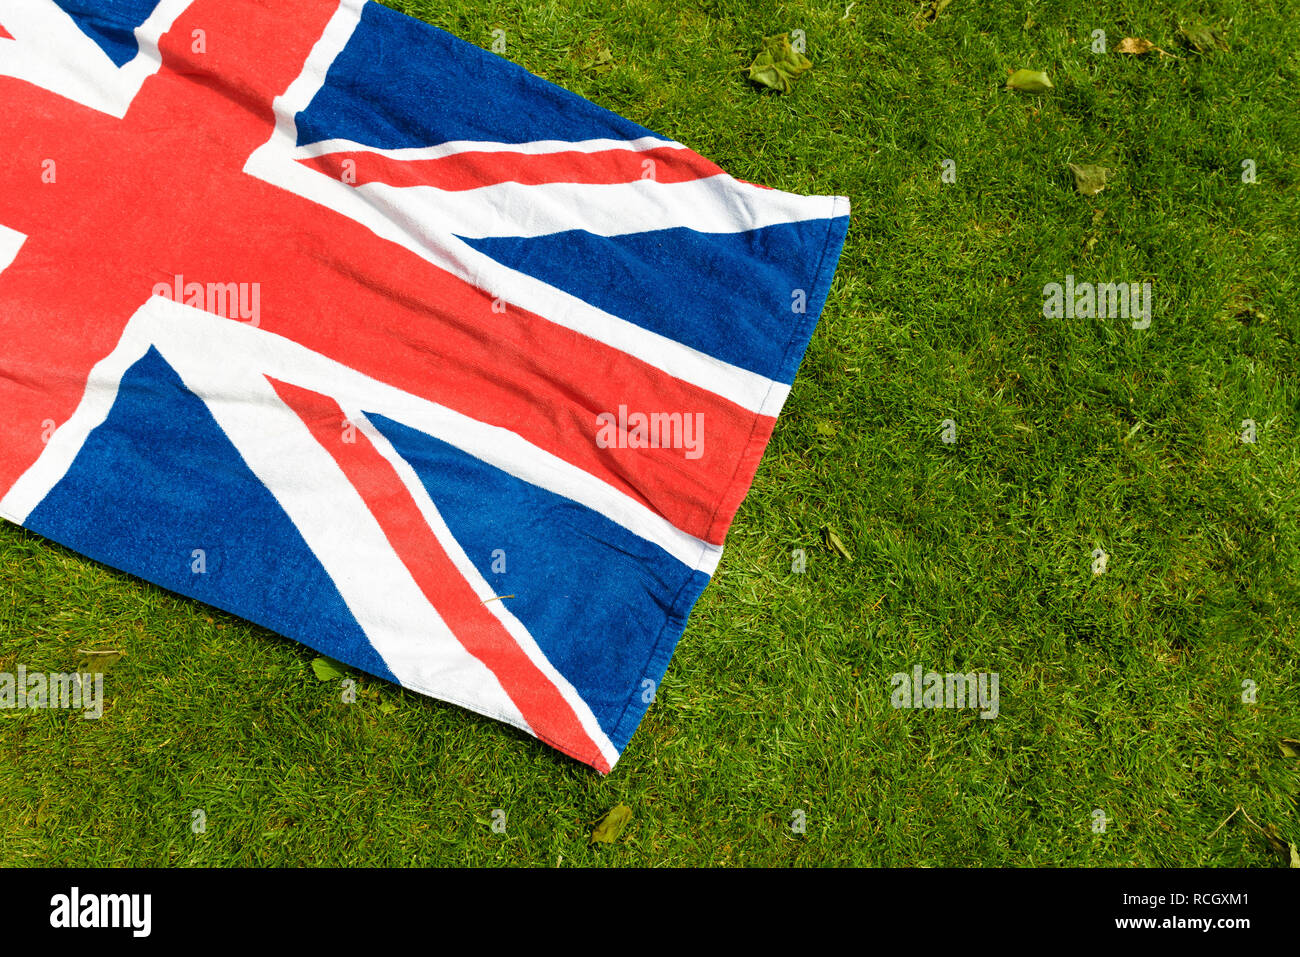 Union Jack on green grass. Great Britain and Northern Ireland flag in a park. Beach towel with the flag of the United Kingdom laid out for a picnic. - Stock Image